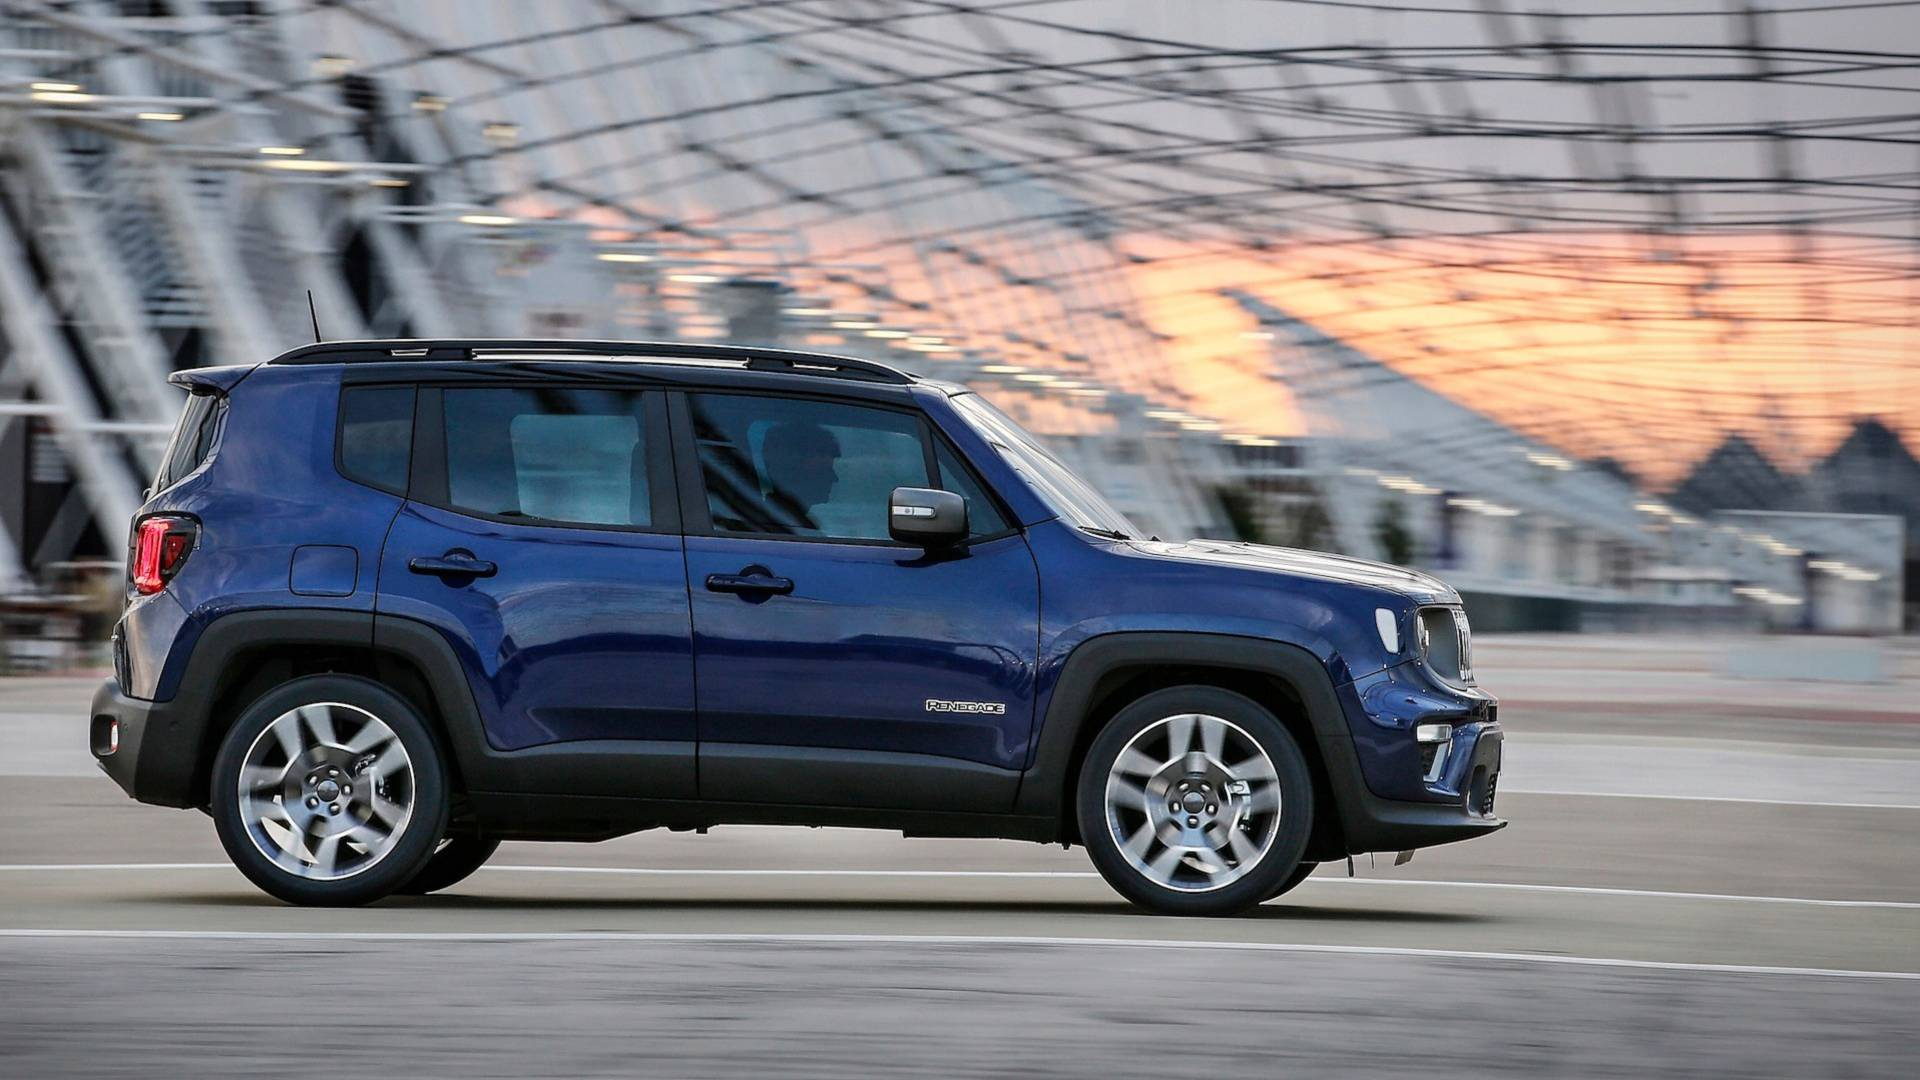 Jeep Renegade Trailhawk For Sale >> 2019 Jeep Renegade Going On Sale In Europe In September - autoevolution